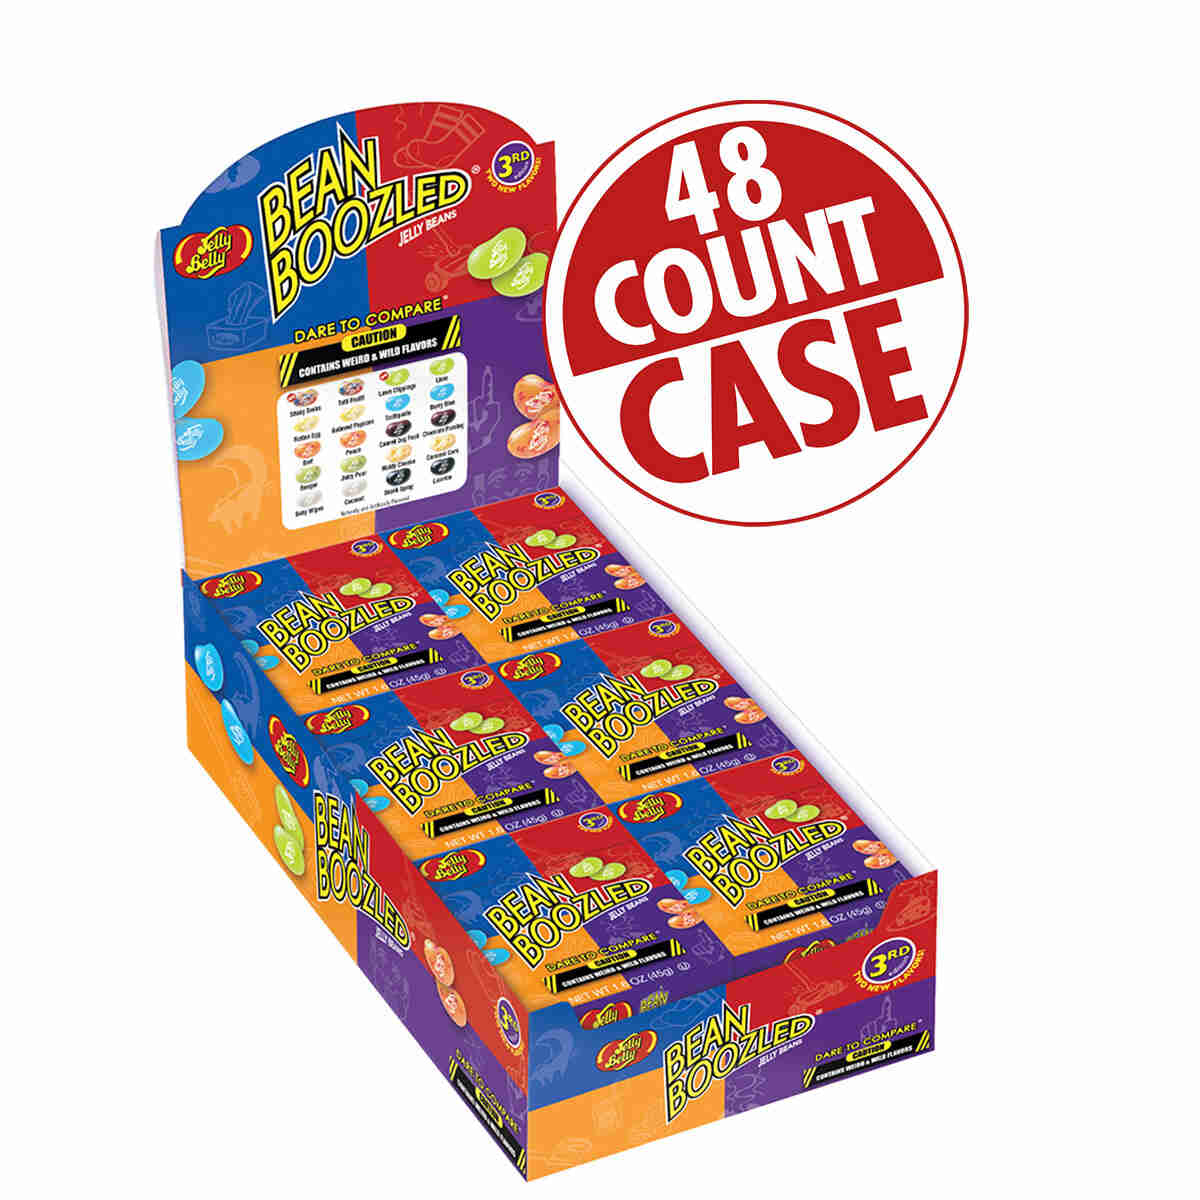 BeanBoozled Jelly Beans - 1.6 oz boxes - 48 Count Case